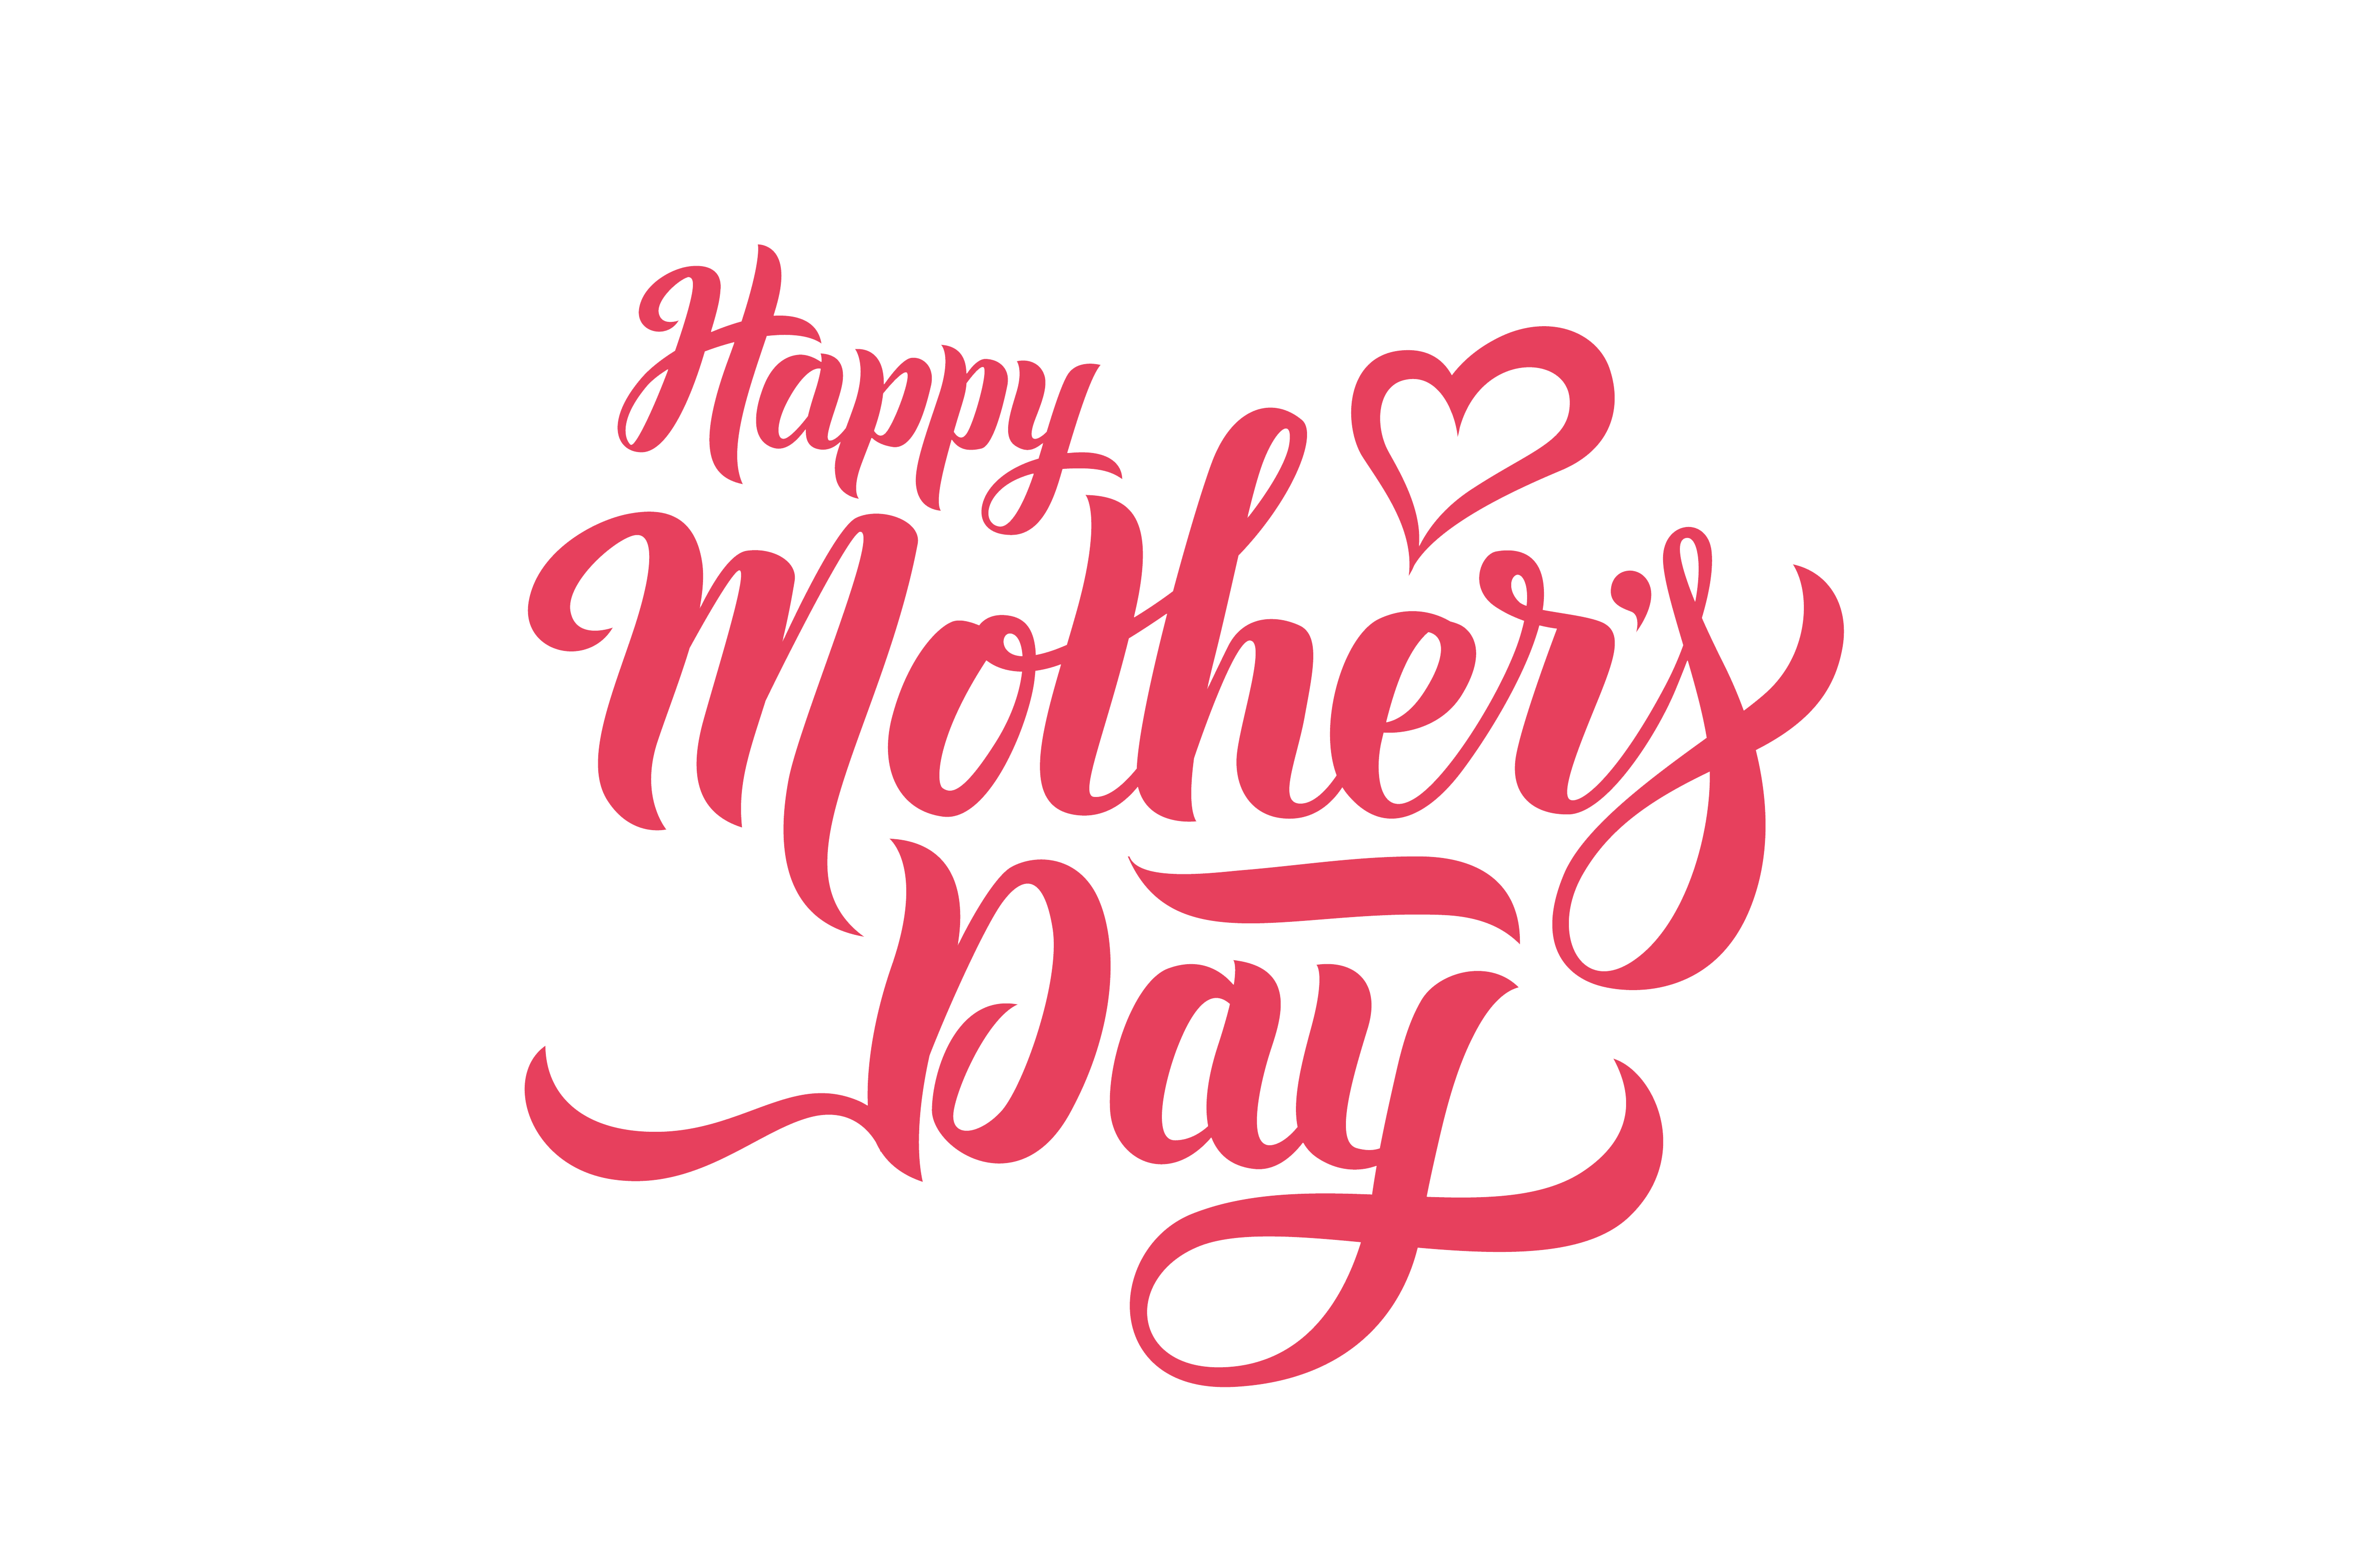 Happy Mothers Day Mother'S Free Frame PNG Image